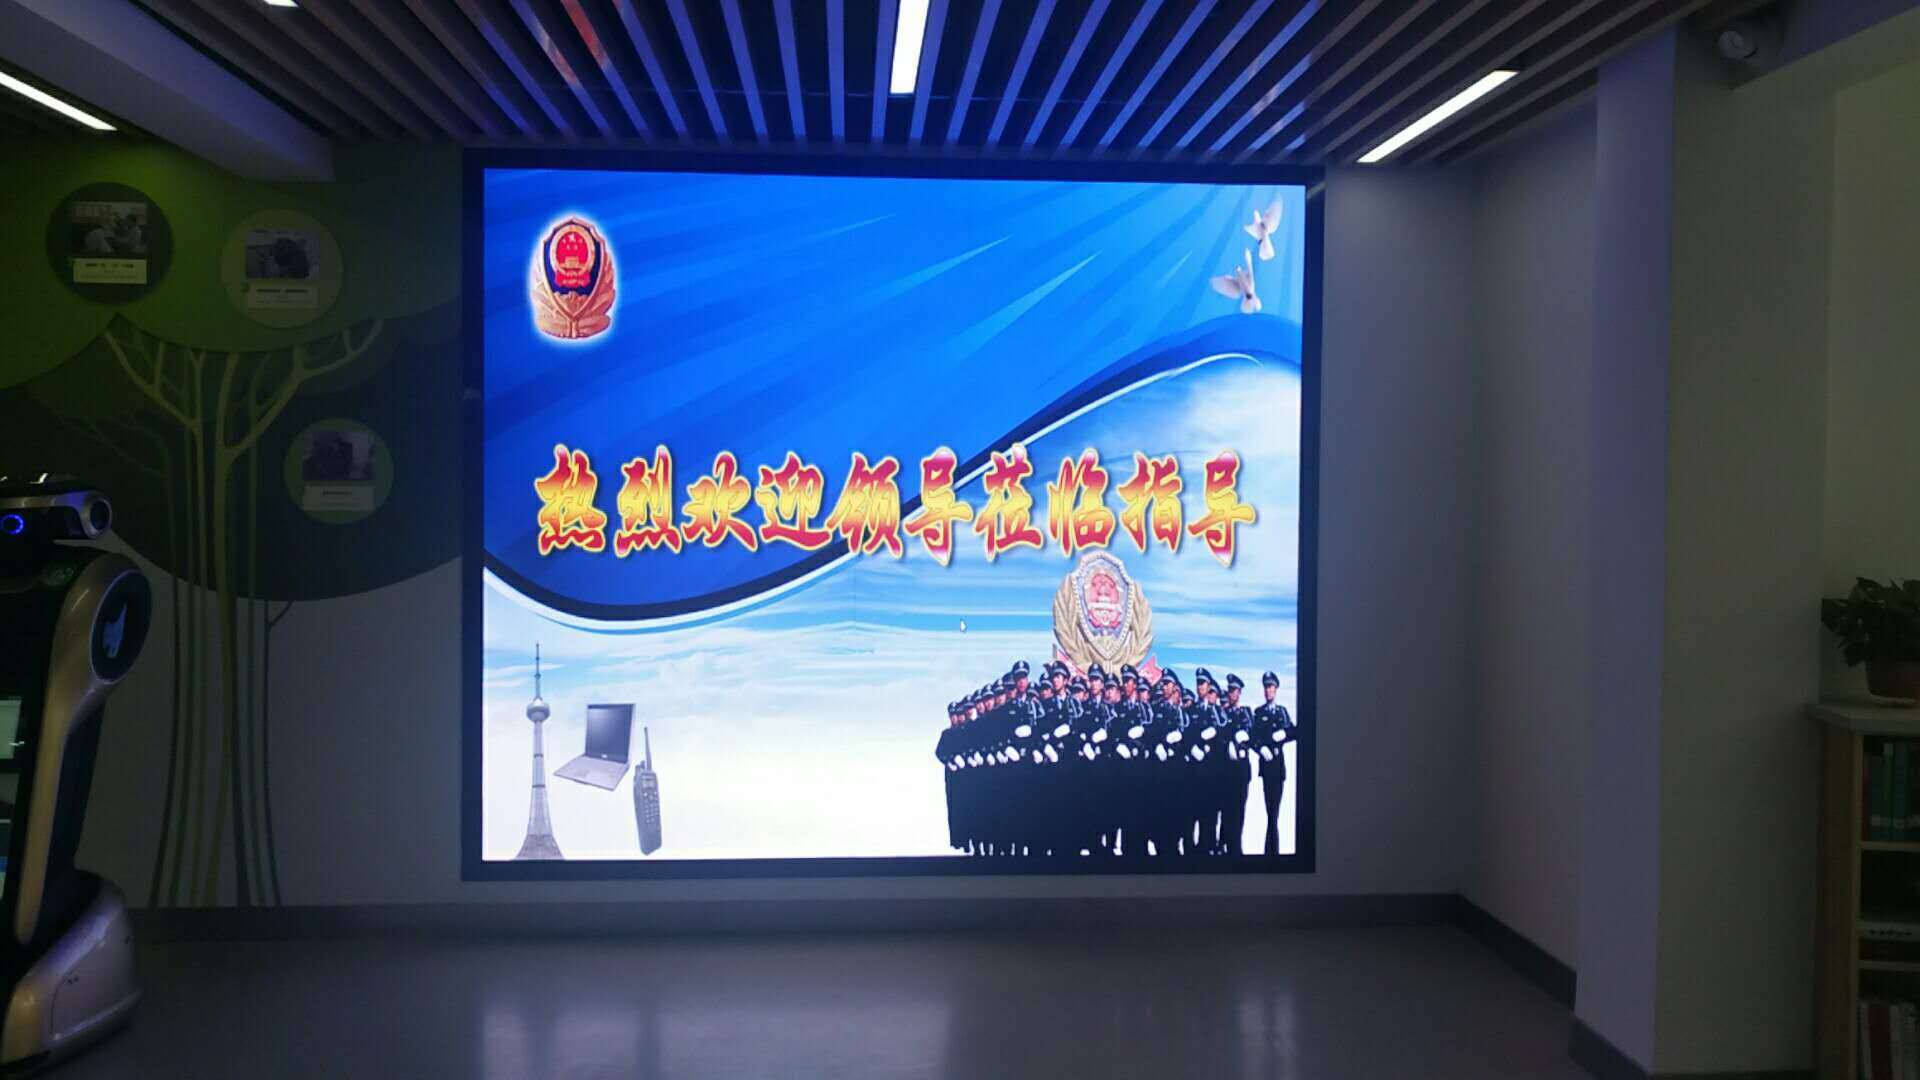 P1.875-led-display02.jpg